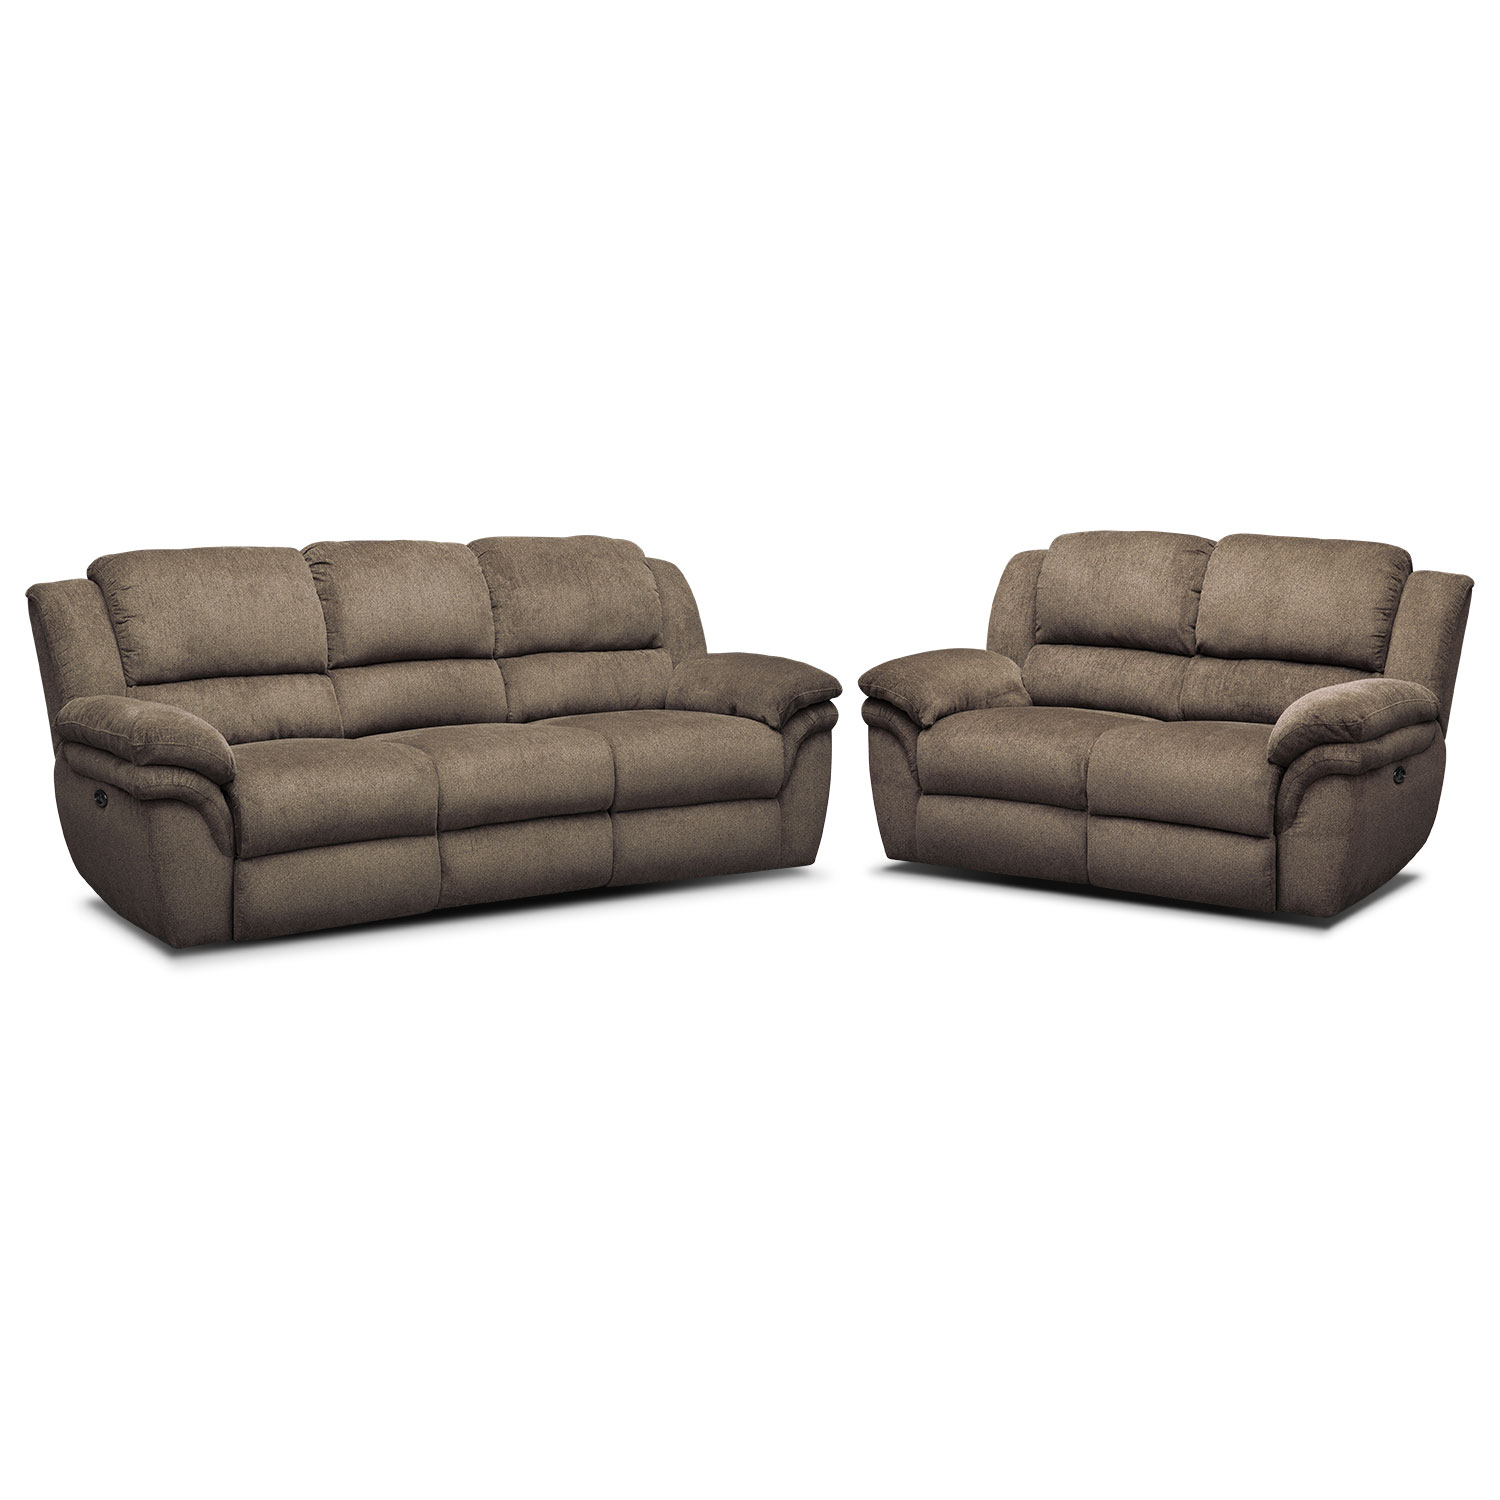 Living Room Furniture - Omni Mocha 2 Pc. Power Reclining Living Room